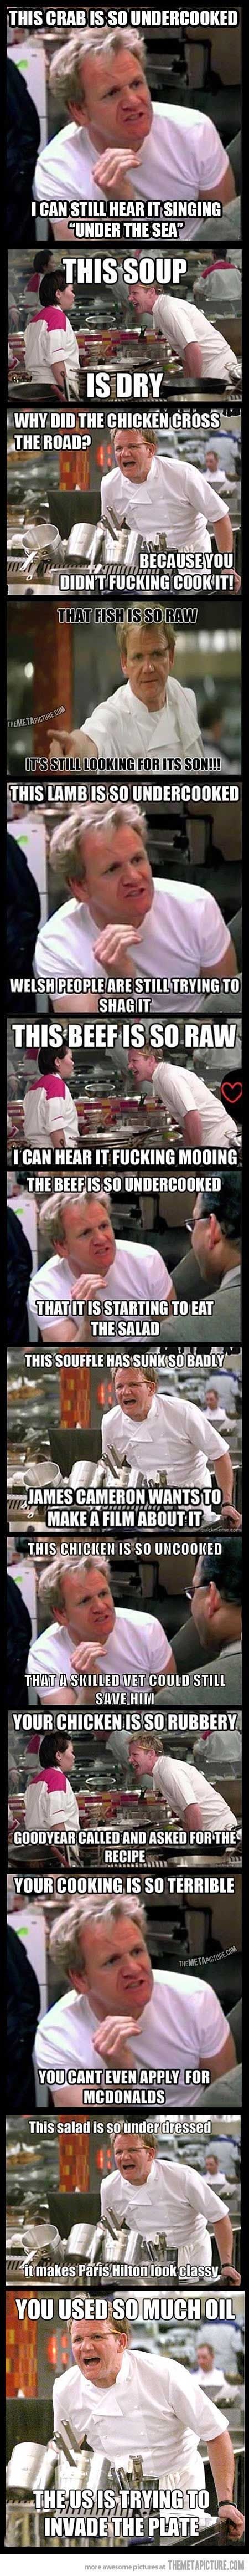 Omg these are all so hilarious!!!! #gordonramsay: